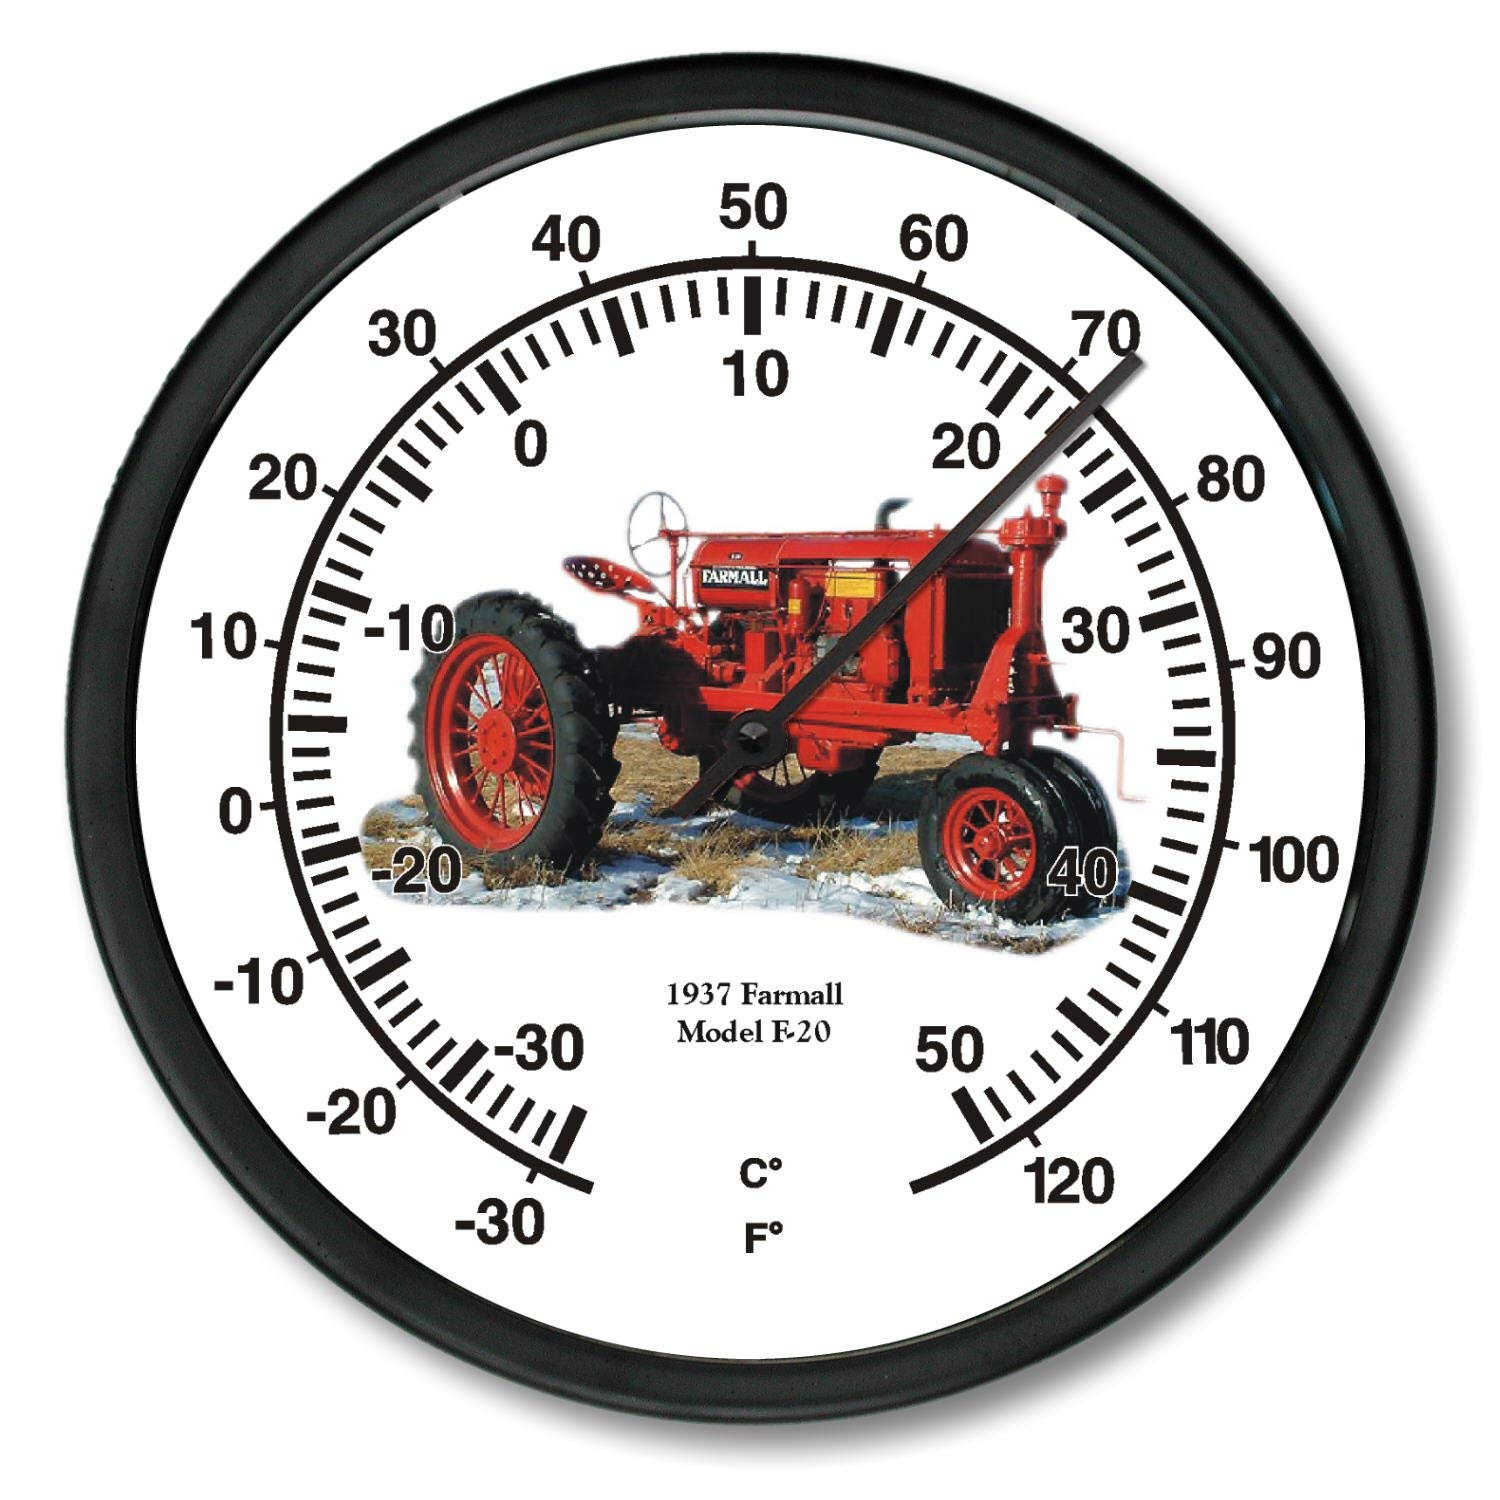 cheap 35 mf tractor find 35 mf tractor deals on line at alibaba Bolens Husky Tractor get quotations new 1937 vintage farmall red tractor mf model f 20 tractor wall thermometer 10